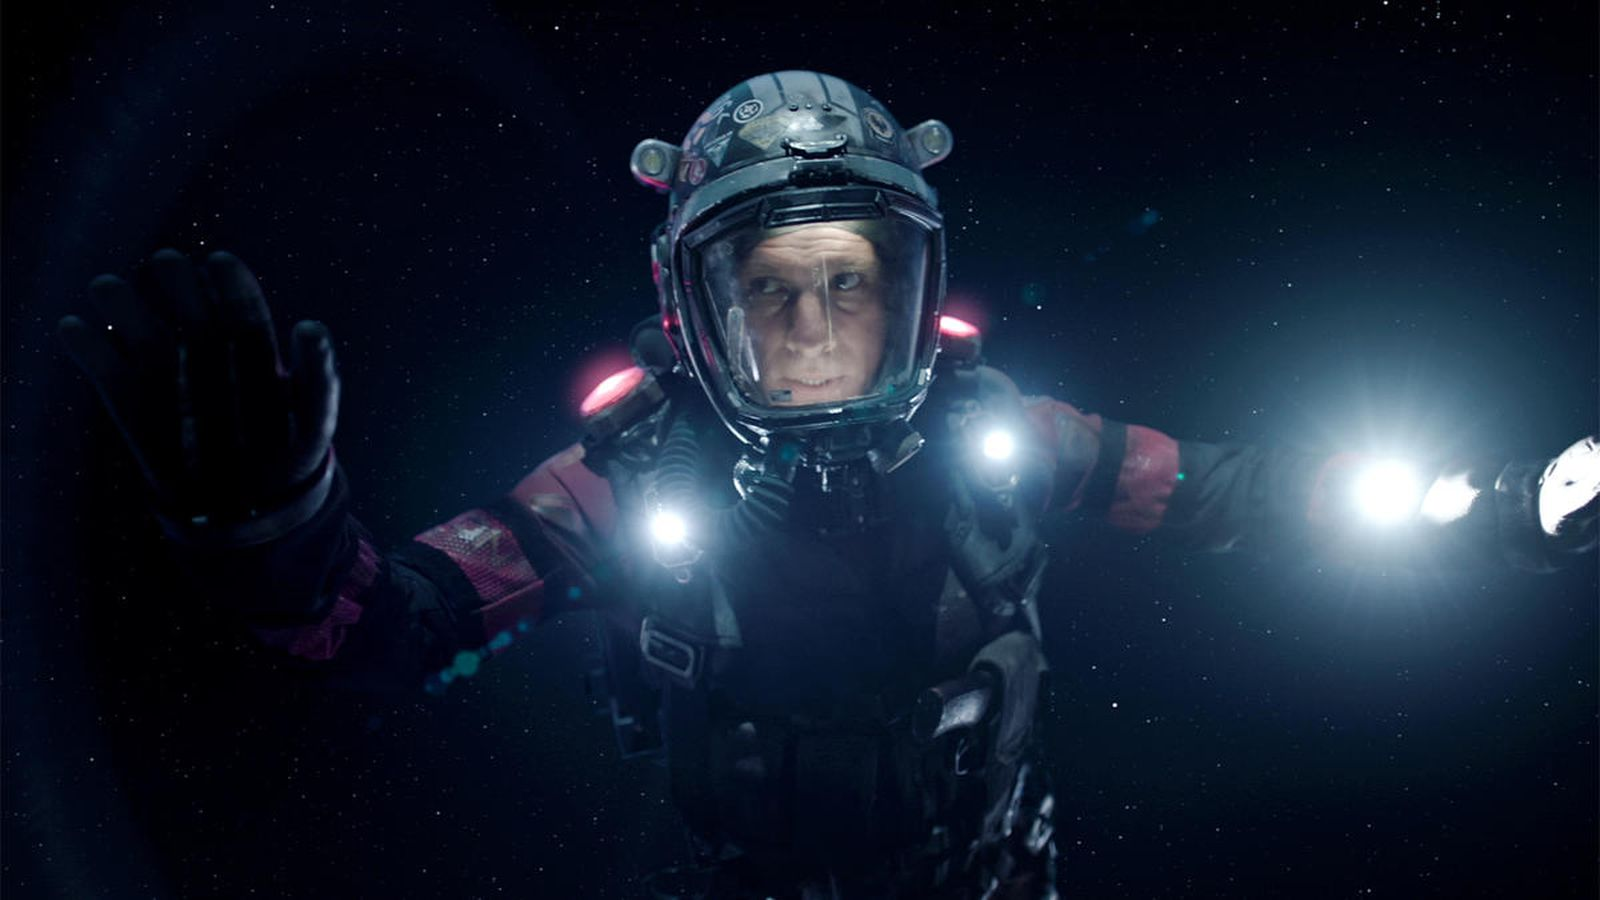 Exploring The Expanse How A Spacewalk Scene Sums Up The Shows VFX And Its Character Conflicts